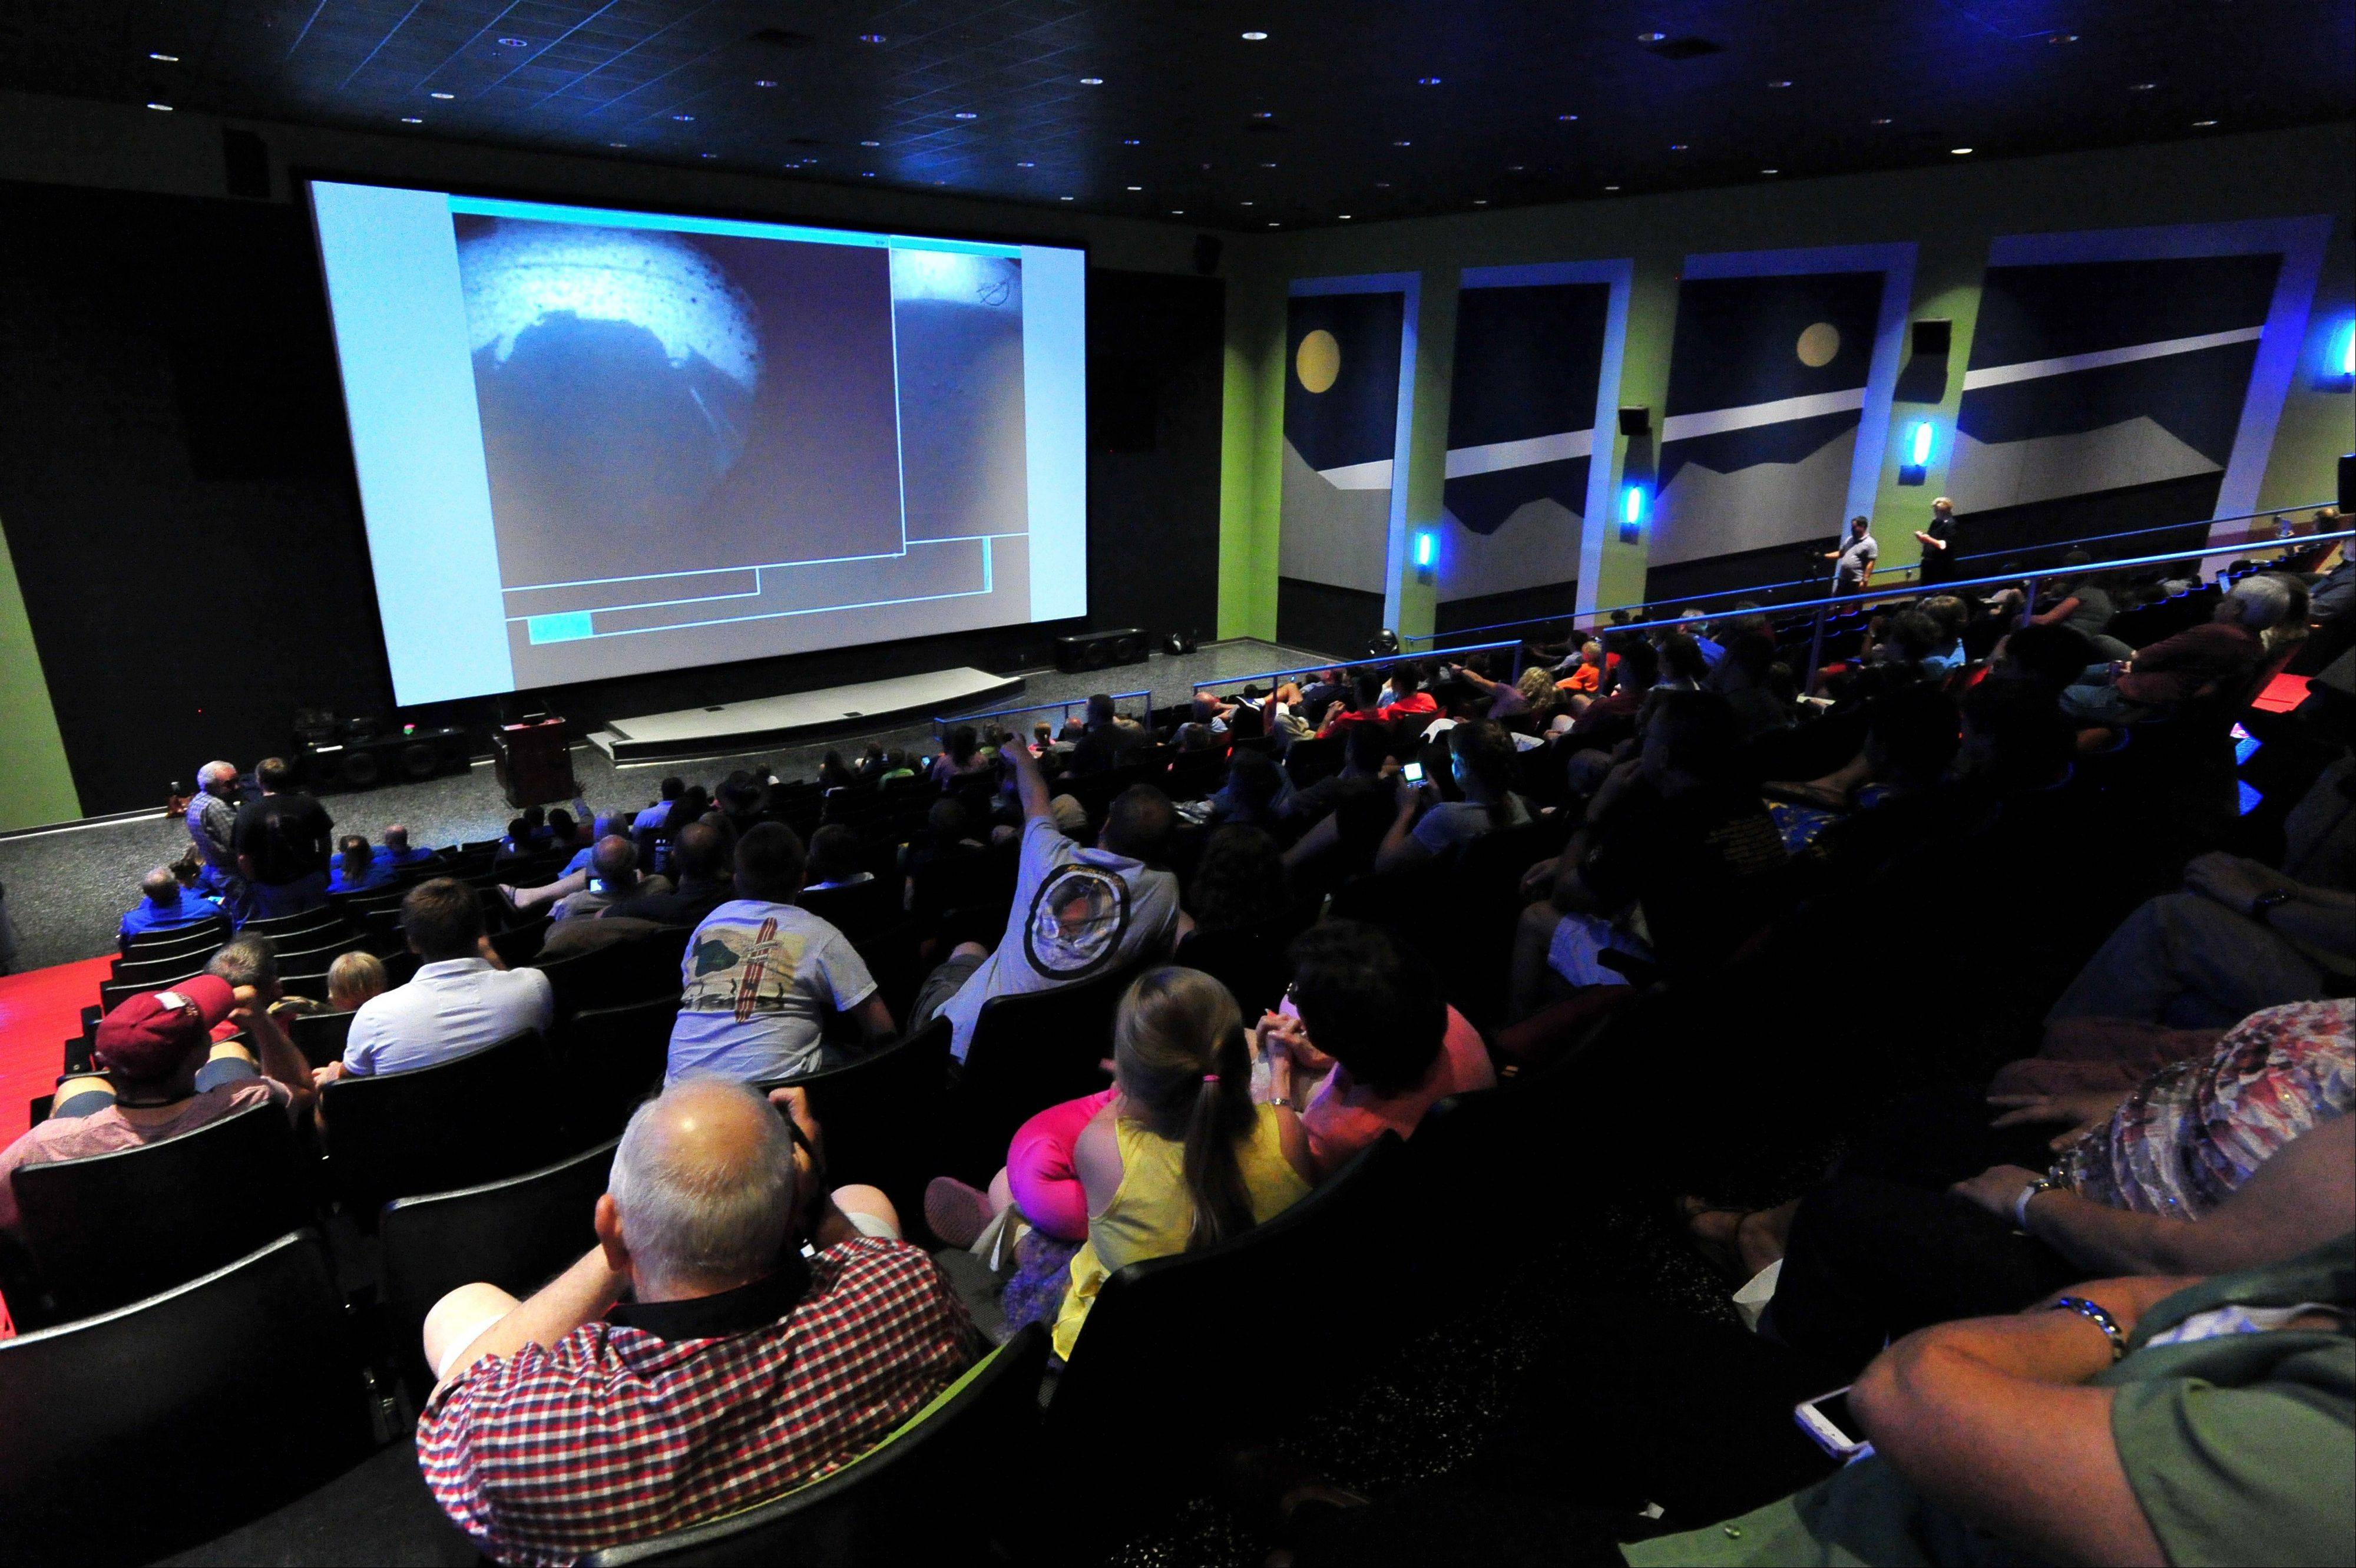 Hundreds watch the images from Mars on the big screen as they watch NASA's Mars Curiosity rover land on Mars during a special viewing event at the U.S. Space and Rocket Center Monday, August 6, 2012 in Huntsville, Ala.